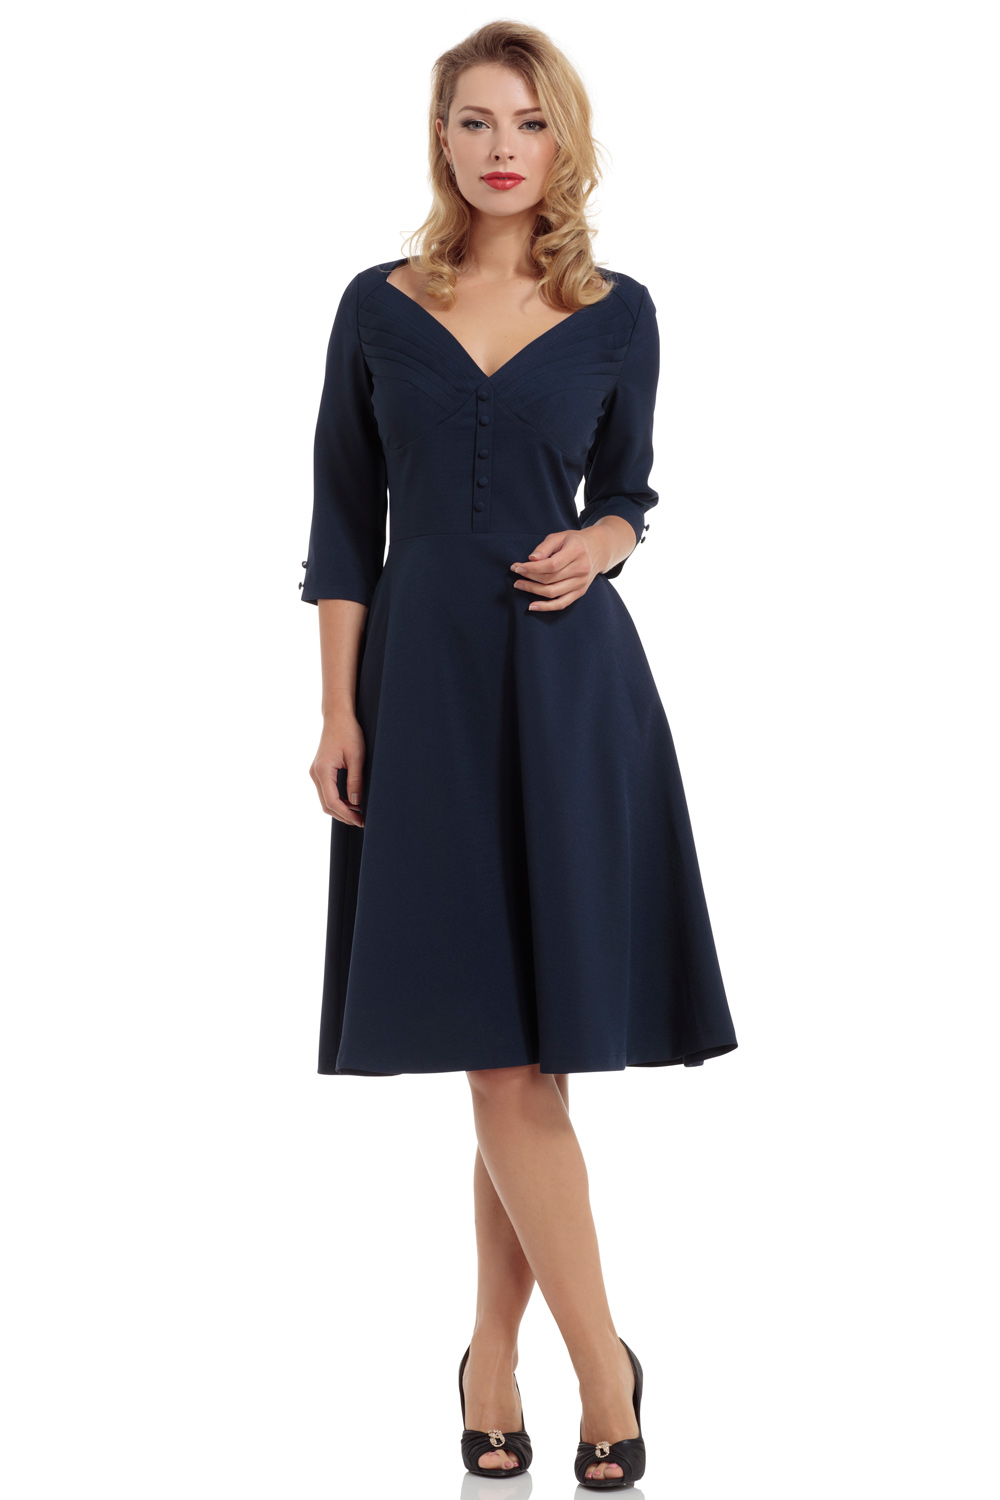 Laura A-line Navy Blue Dress